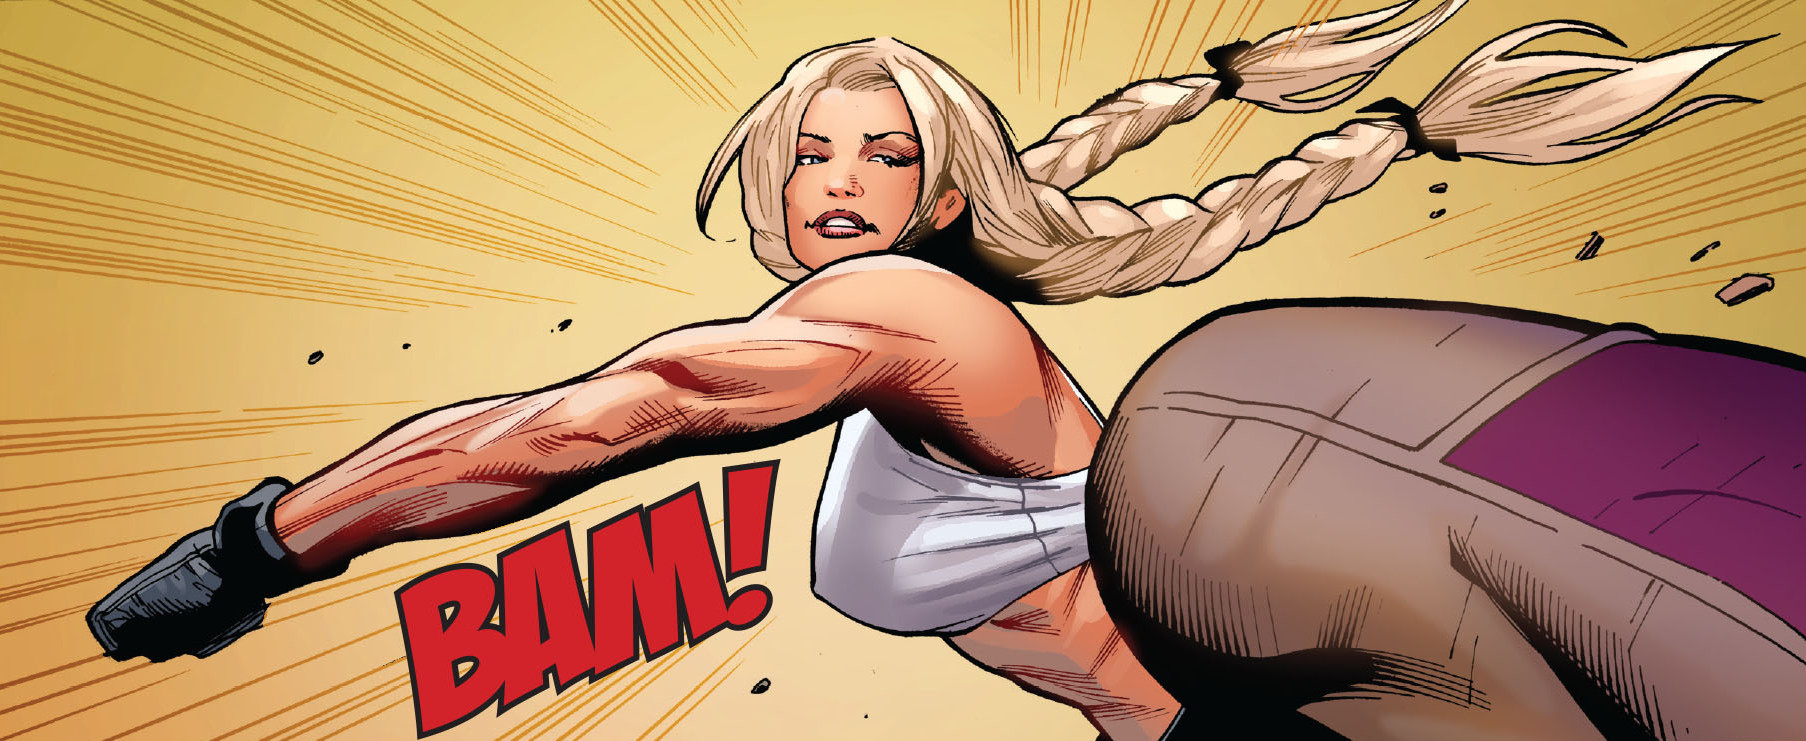 Bouncing Betty (Earth-616)